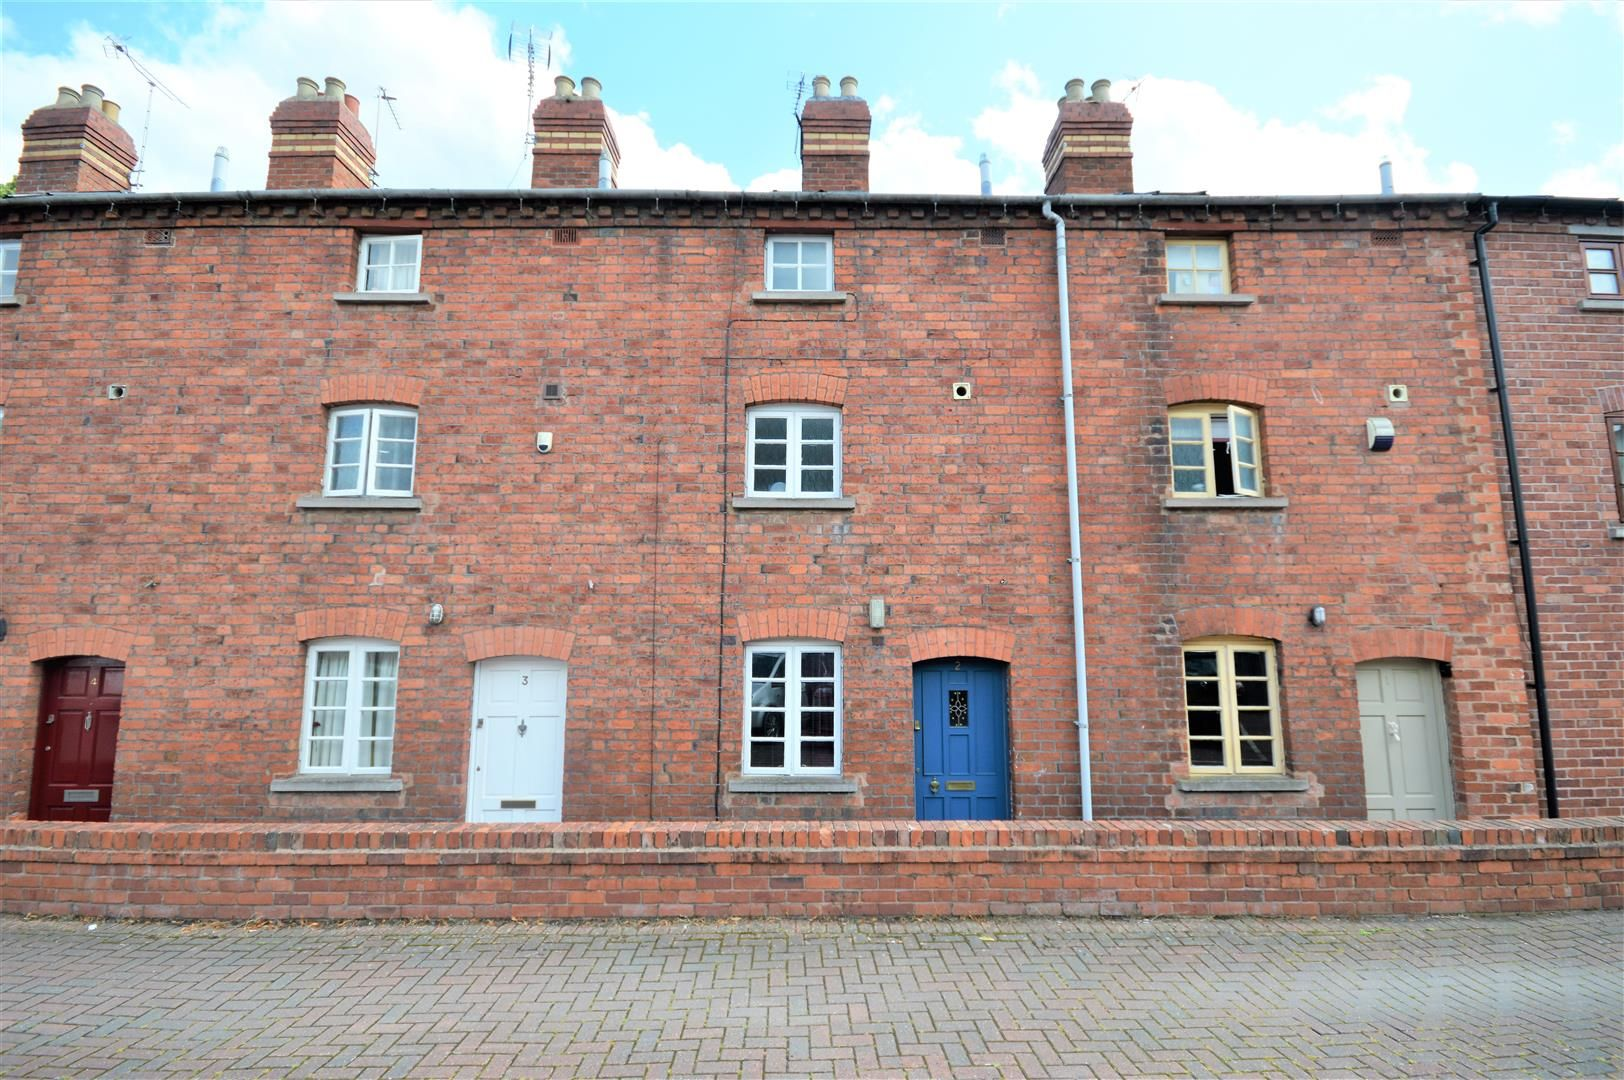 3 bed town-house for sale in Hereford  - Property Image 1